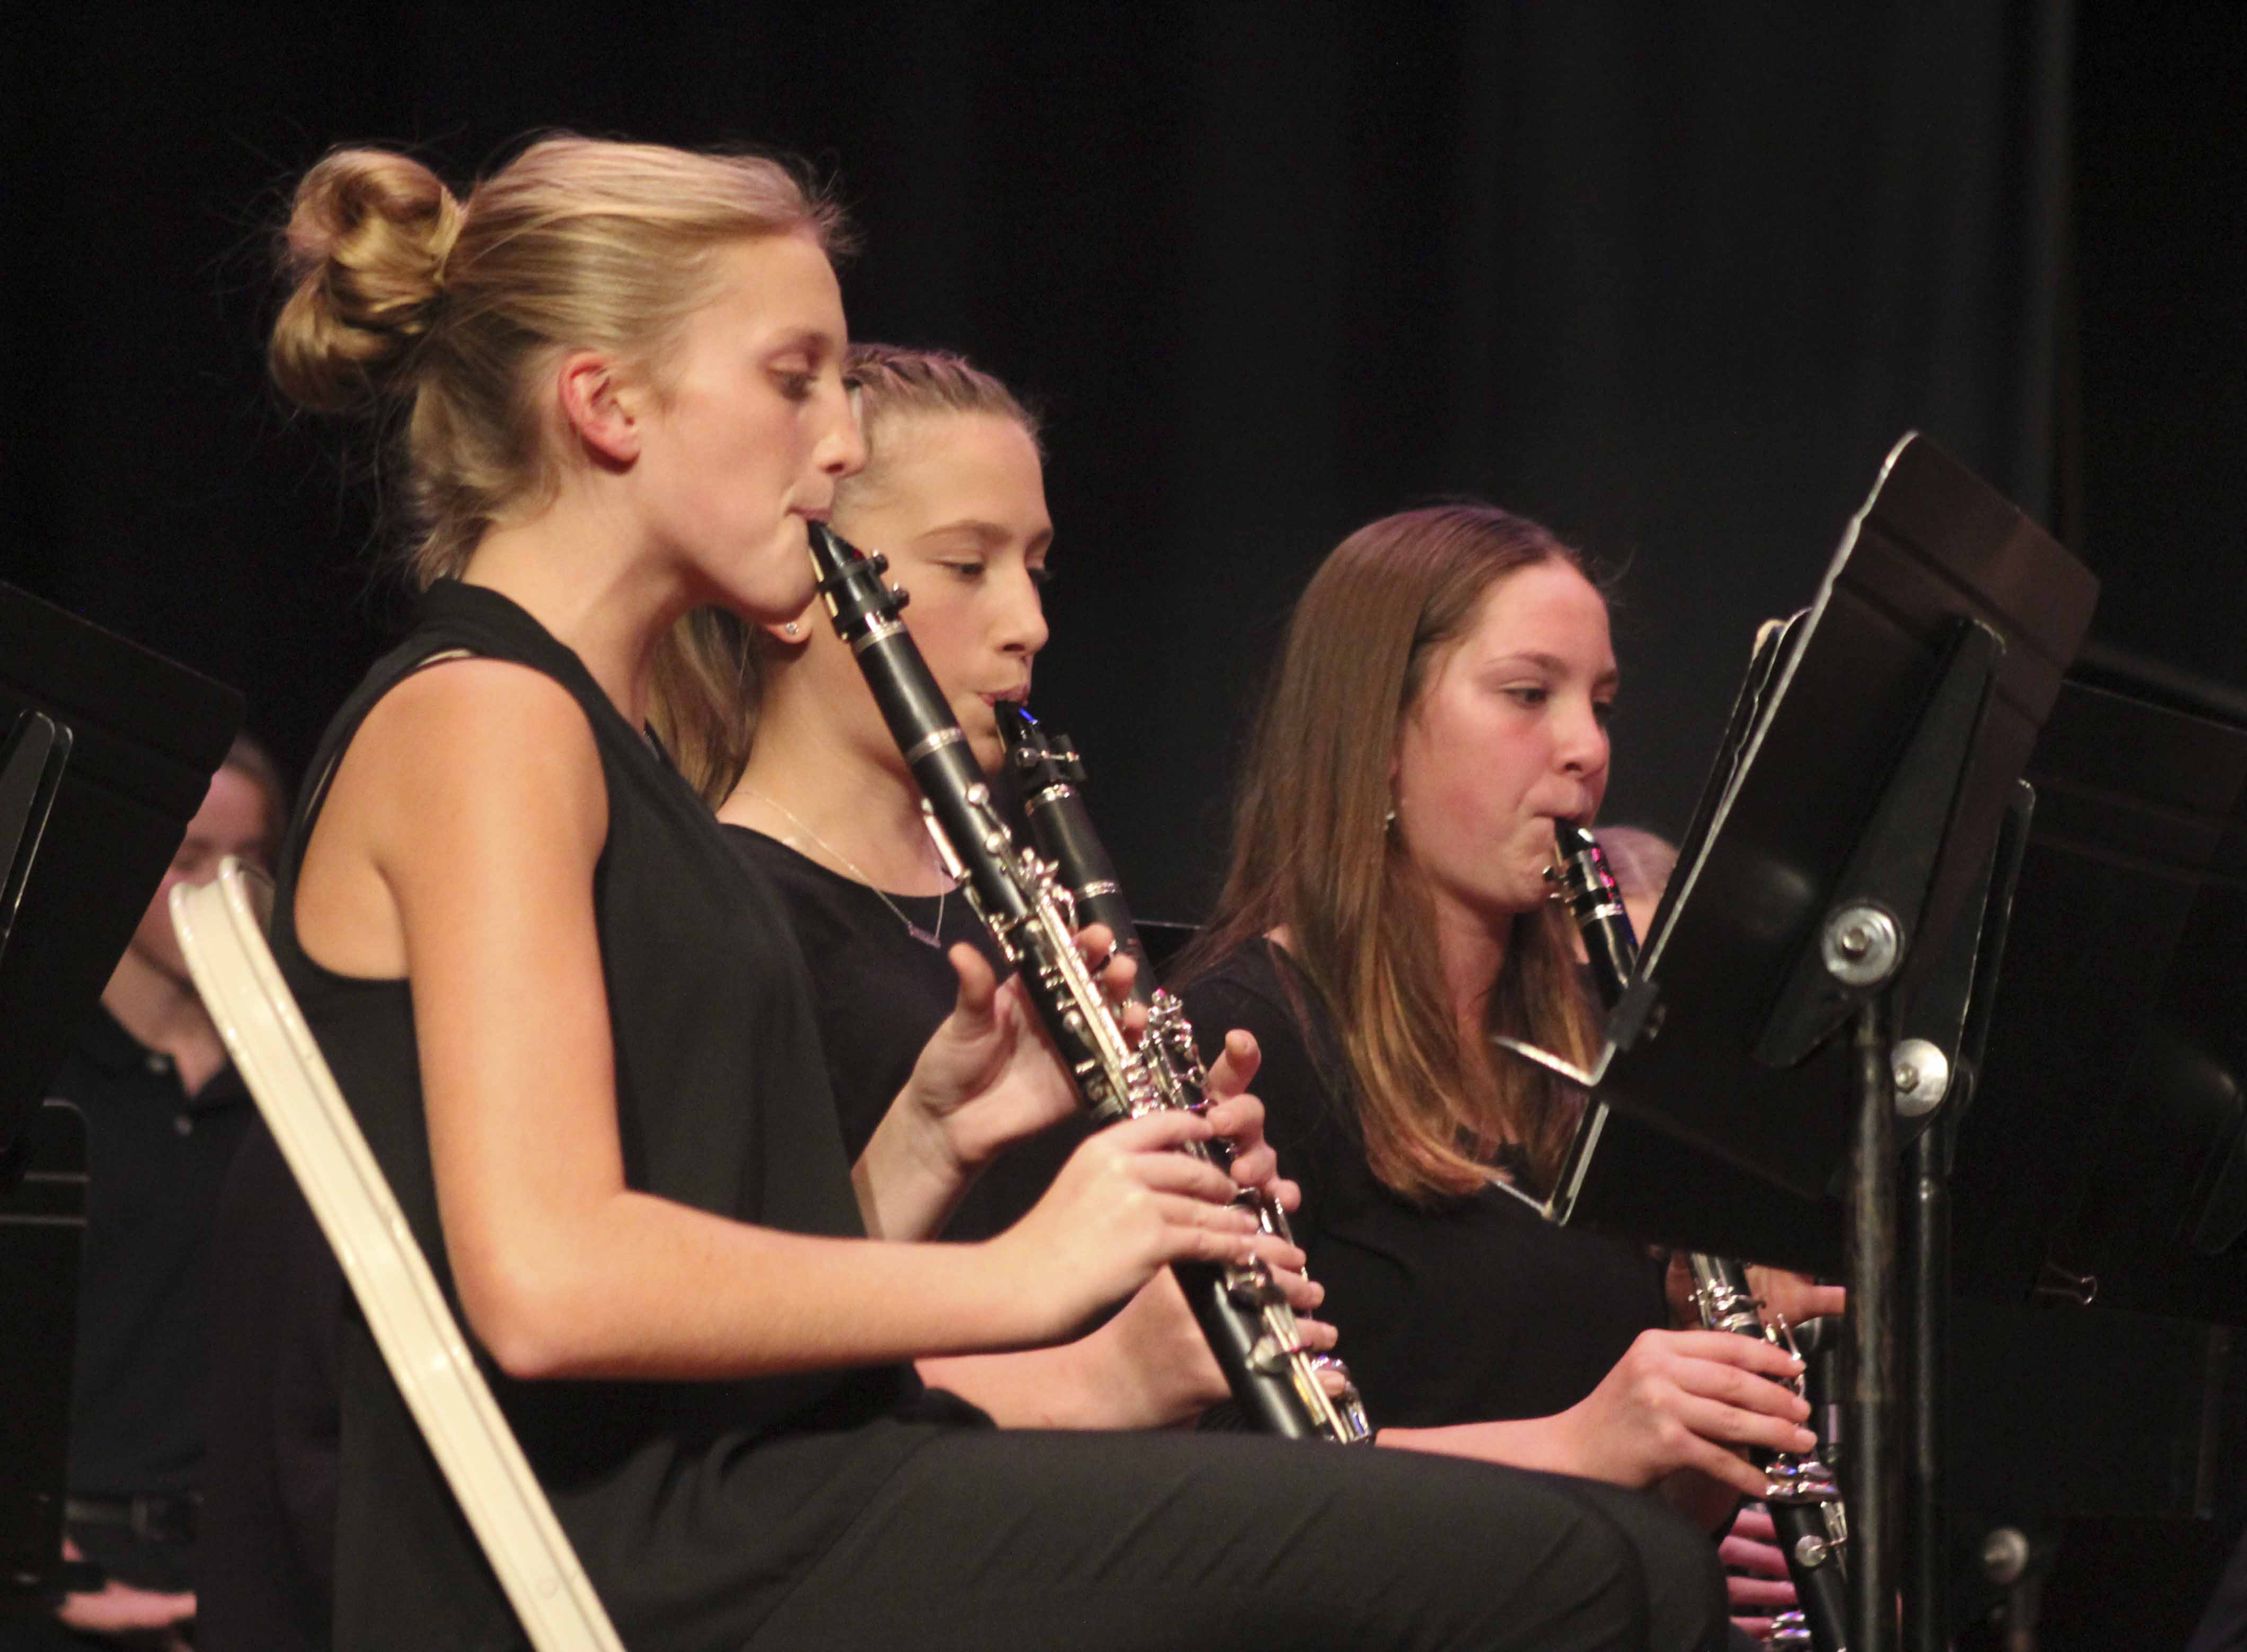 Clarinet players (from front) Karle Kramer, Nora Sperfslage and Katie Roher perform during the grade 7-8 portion of the Monticello Middle School Bands Fall Concert Oct. 26 in the middle school auditorium. (Photo by Diane Temple)